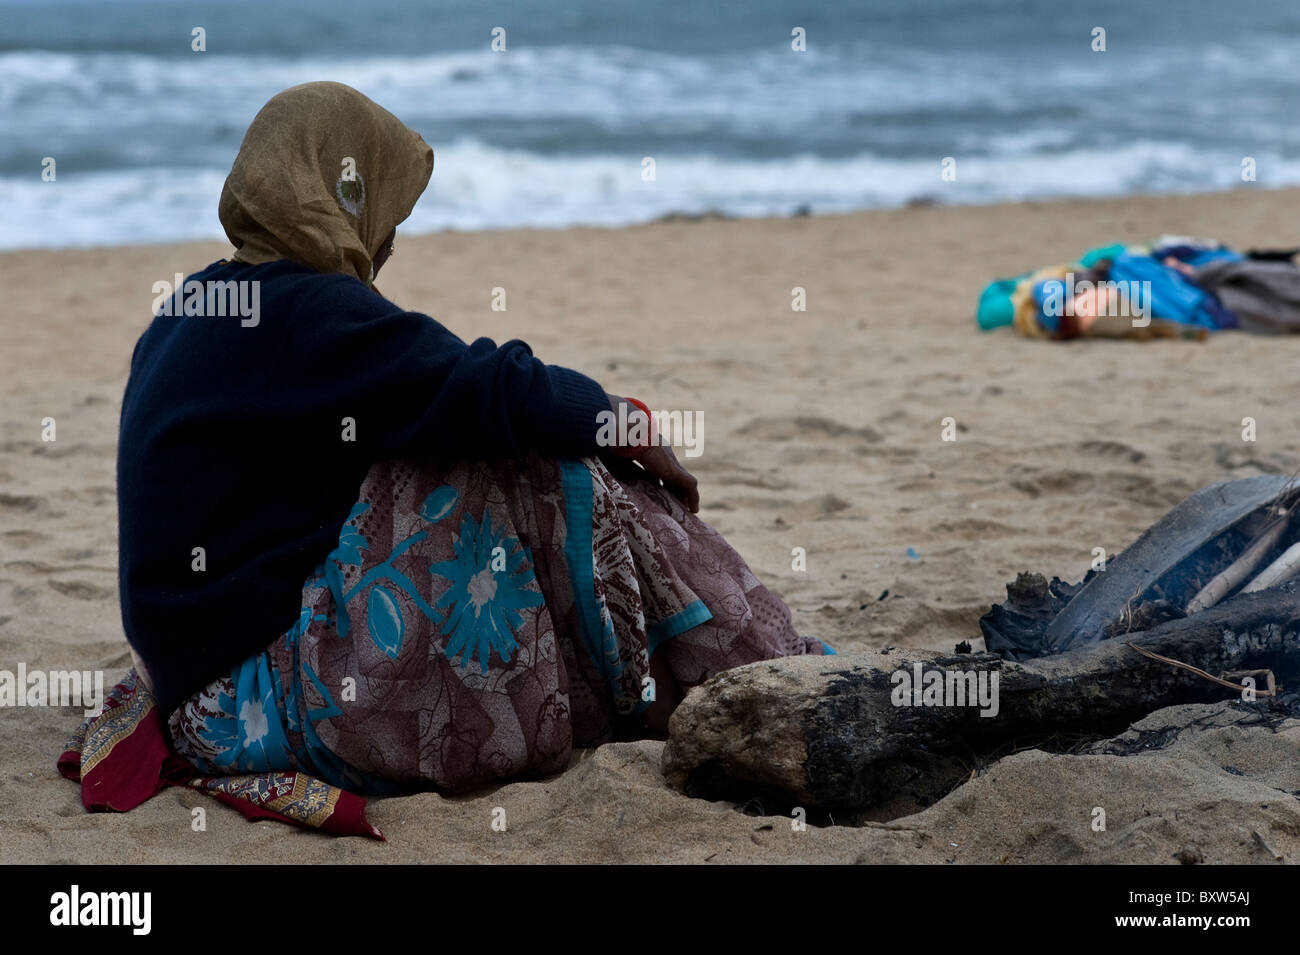 Beach seller staying warm on a cool day in South India near Mamallapuram - Stock Image